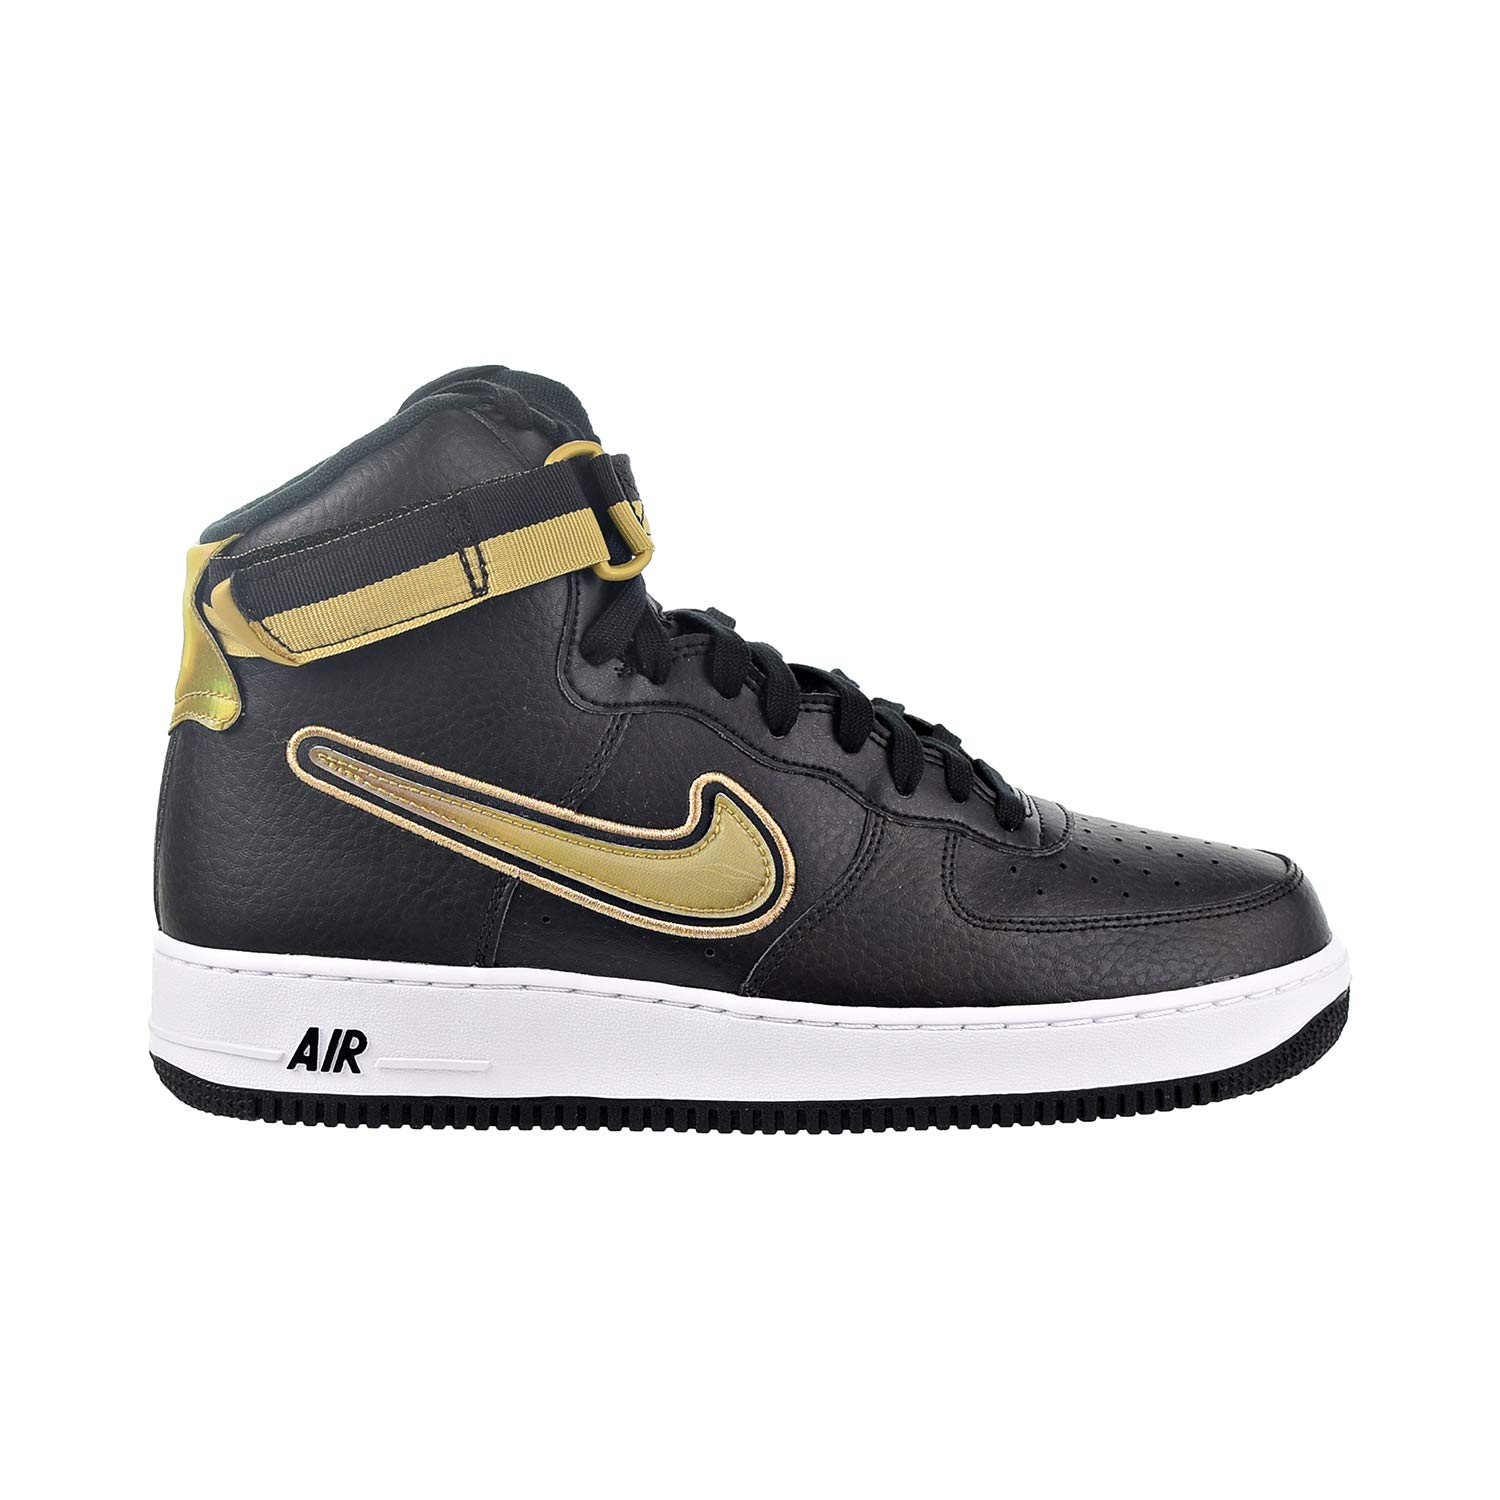 Nike Air Force 1 High \u002707 LV8 Sport [AV3938,001] Men Casual Shoes NBA  Black/Gold/US 10.5